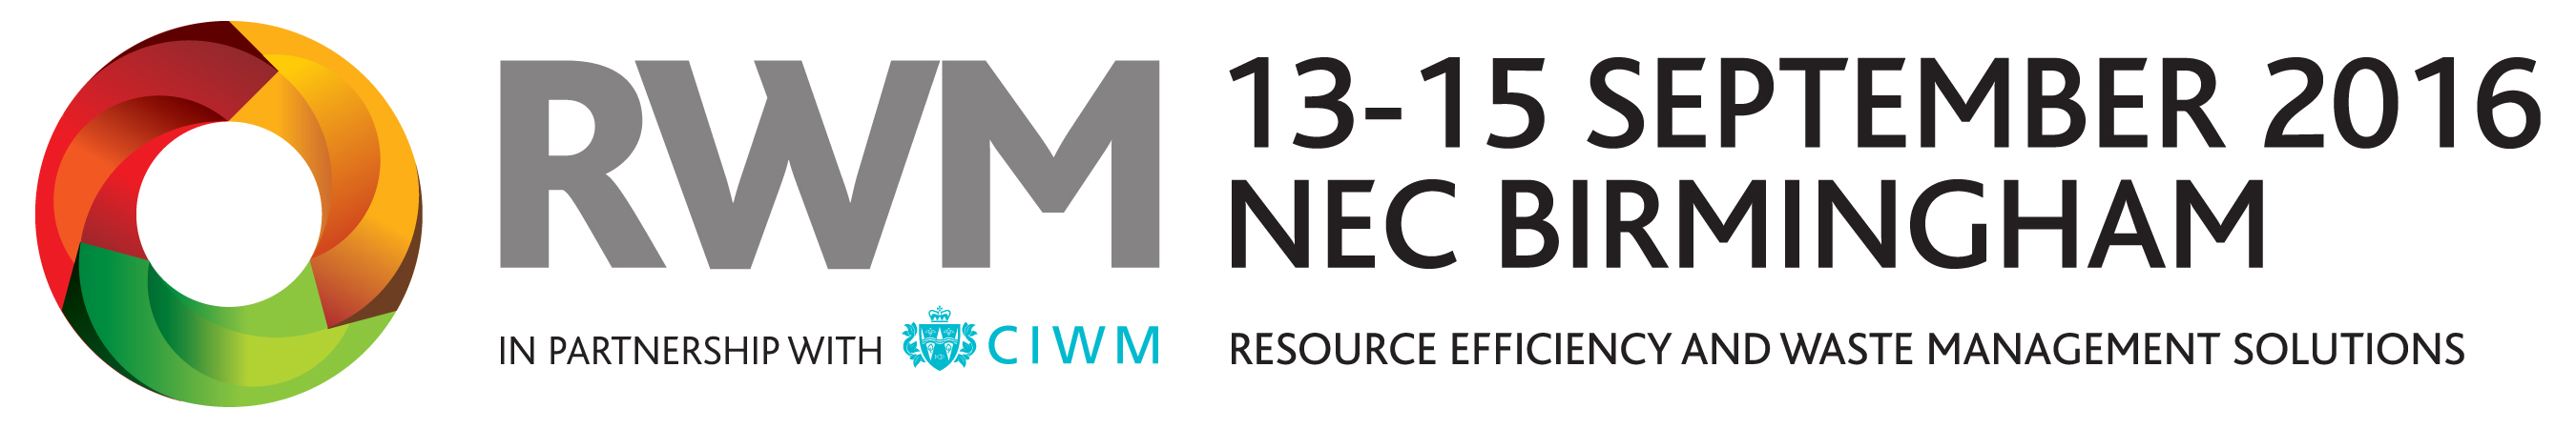 RWM 2016 will be leading the way